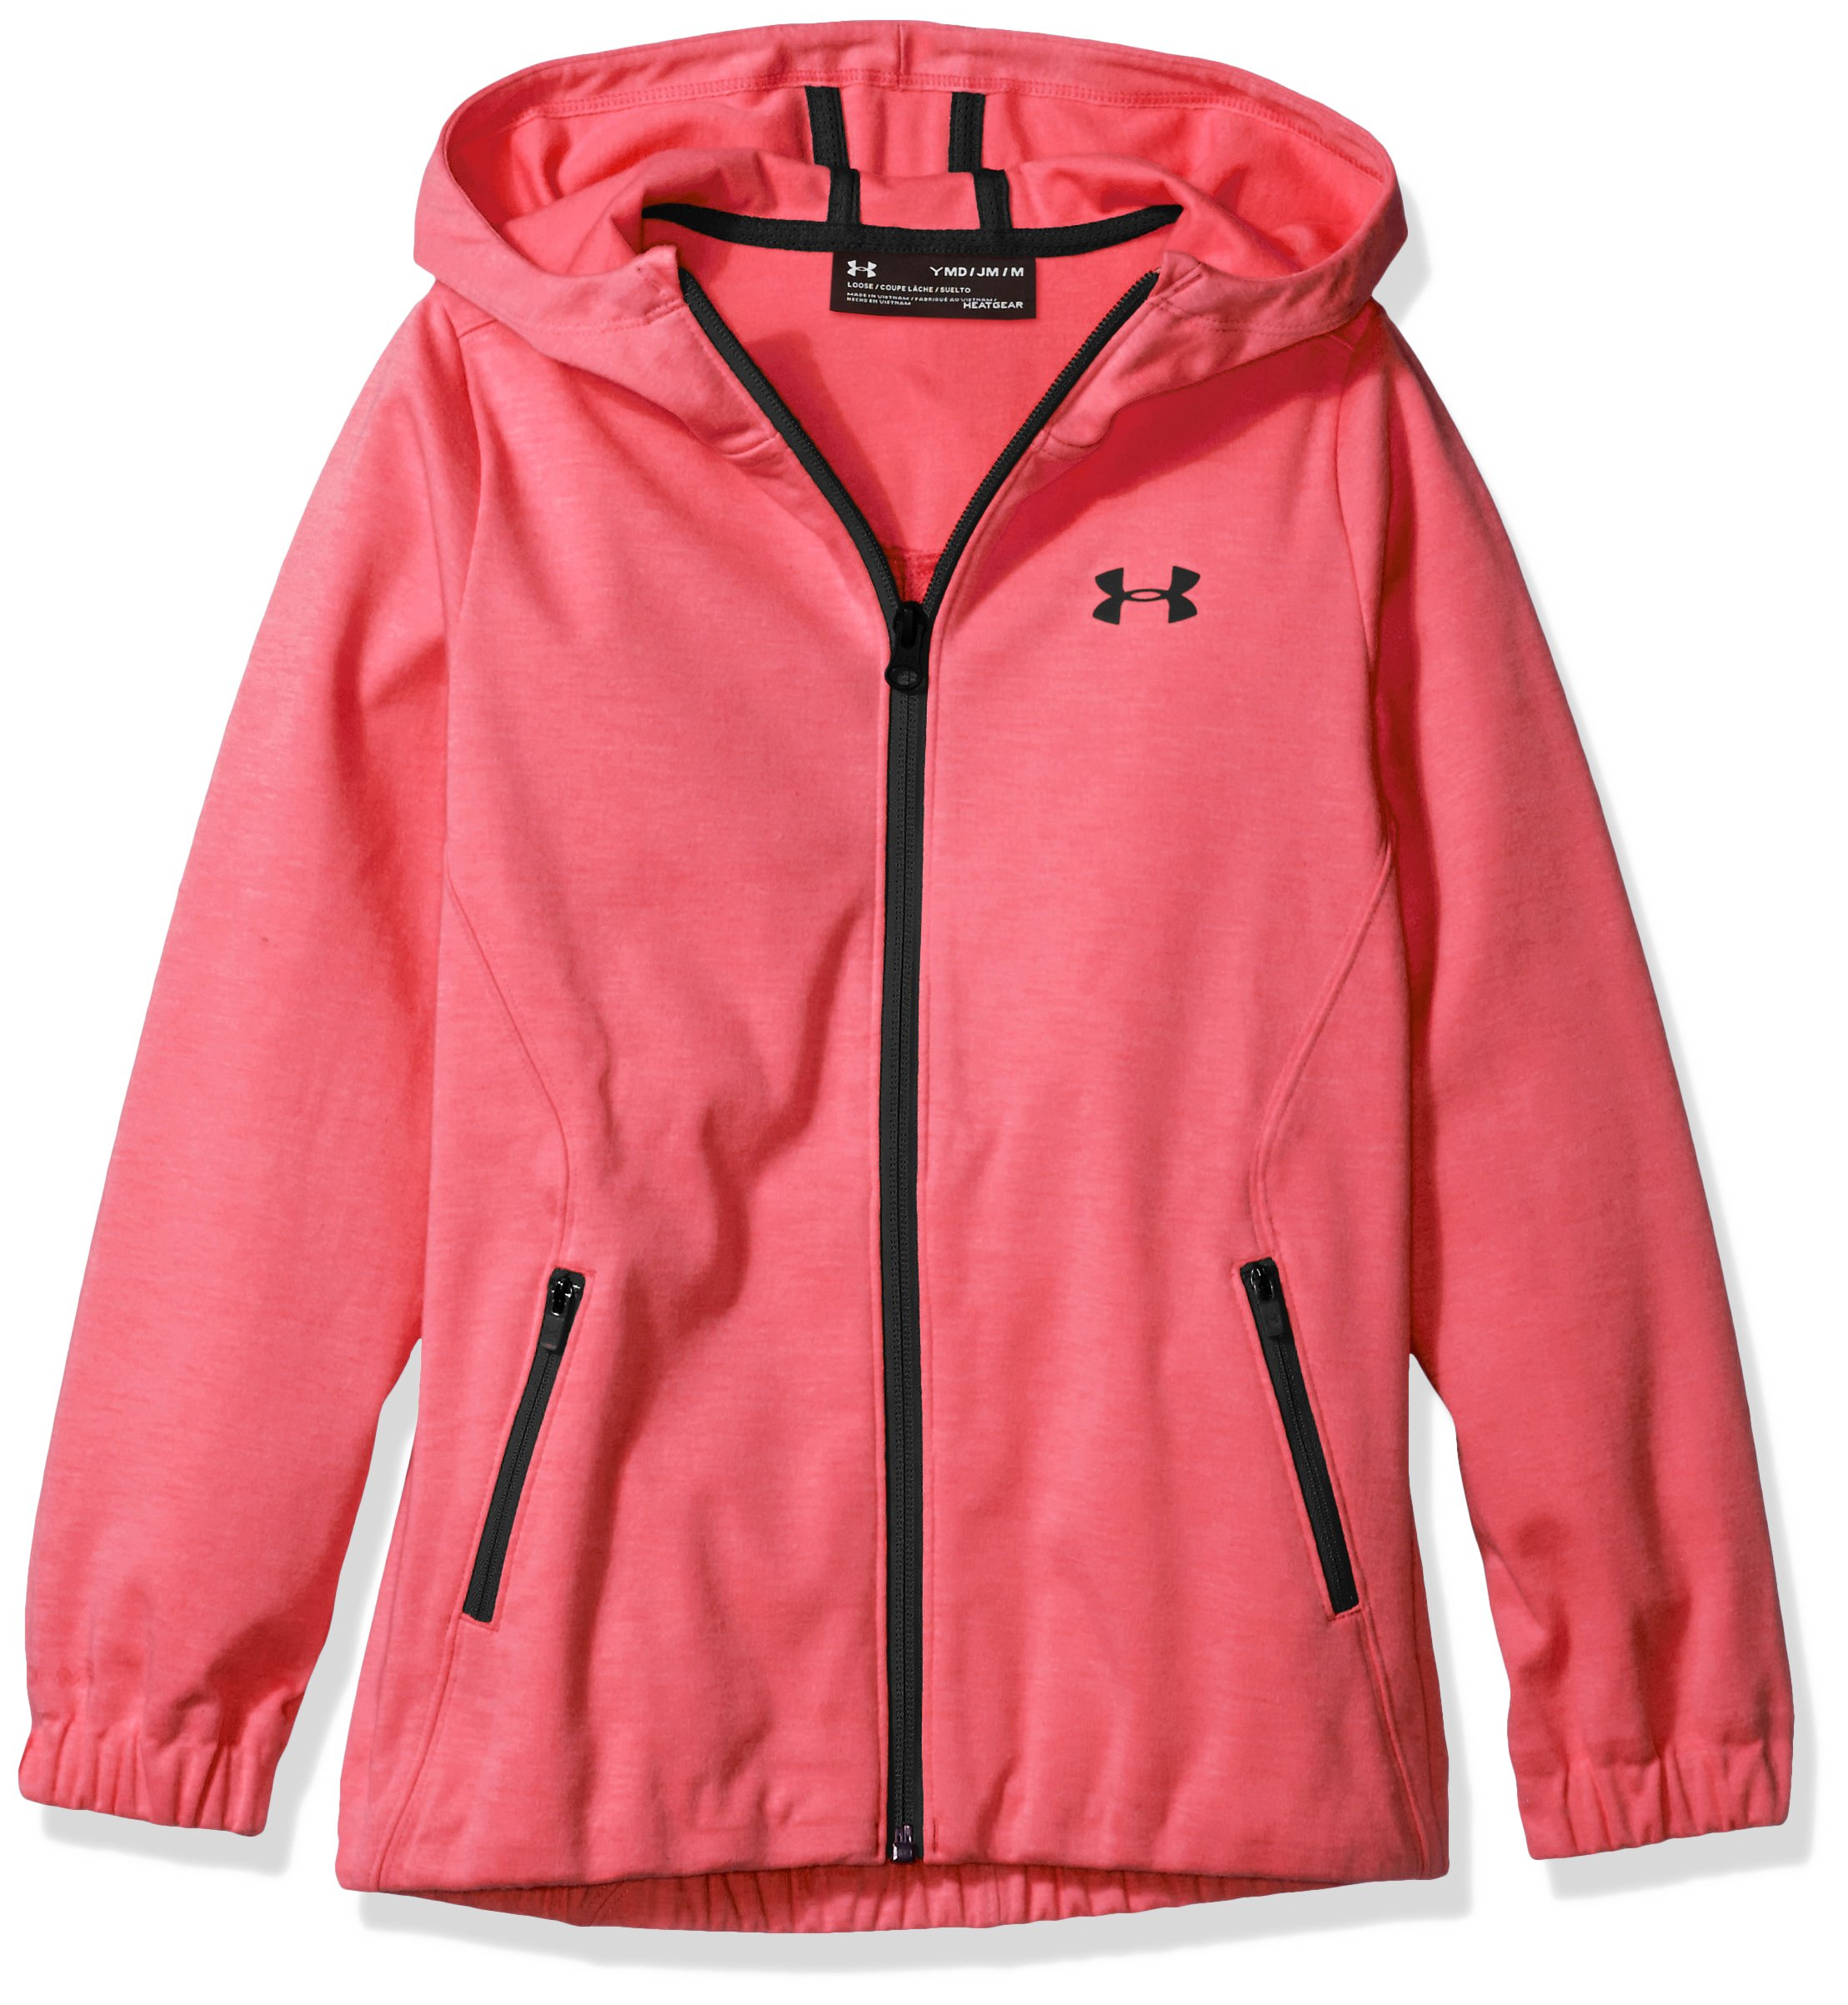 Under Armour Girls Spring Swacket, Penta Pink /Black, Youth Small by Under Armour